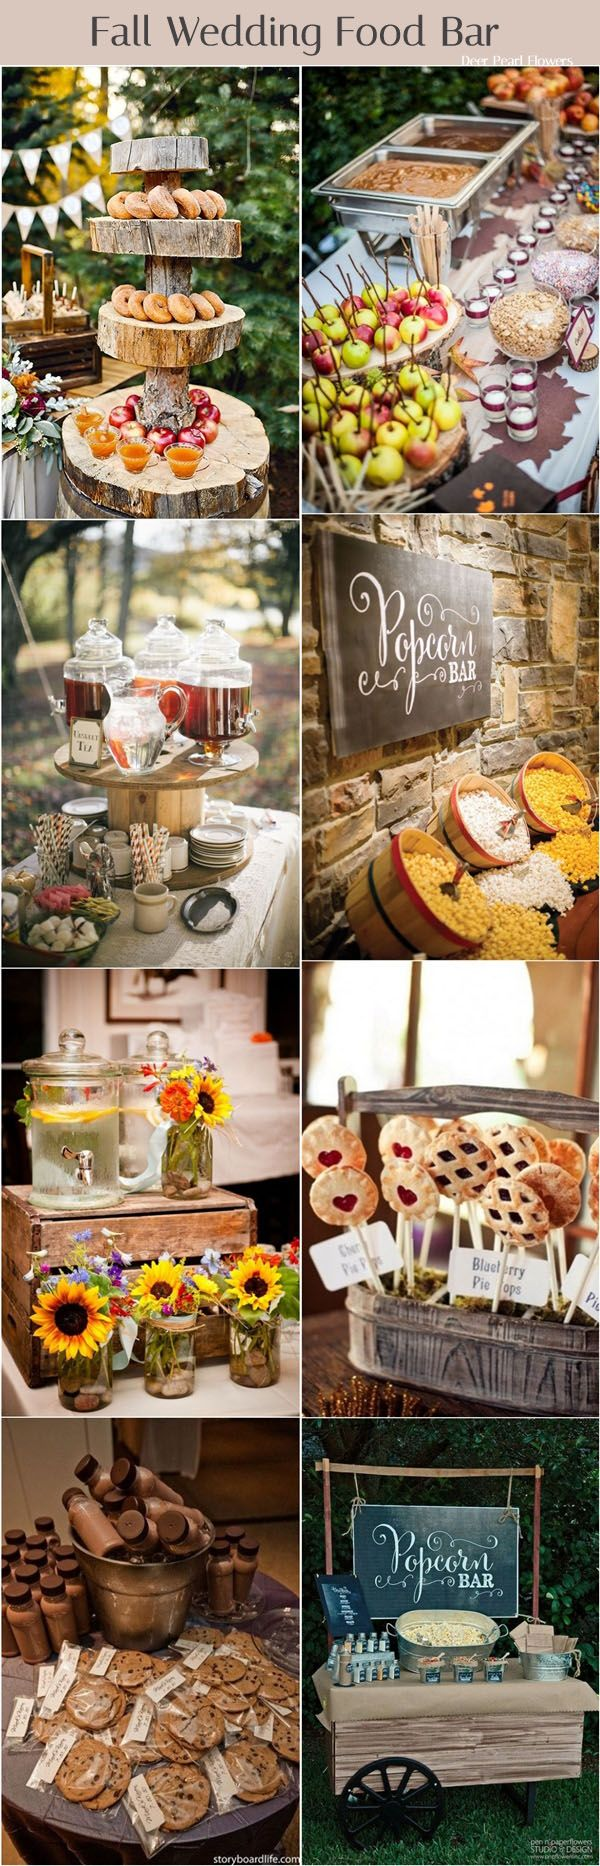 76 Of The Best Fall Wedding Ideas For 2017